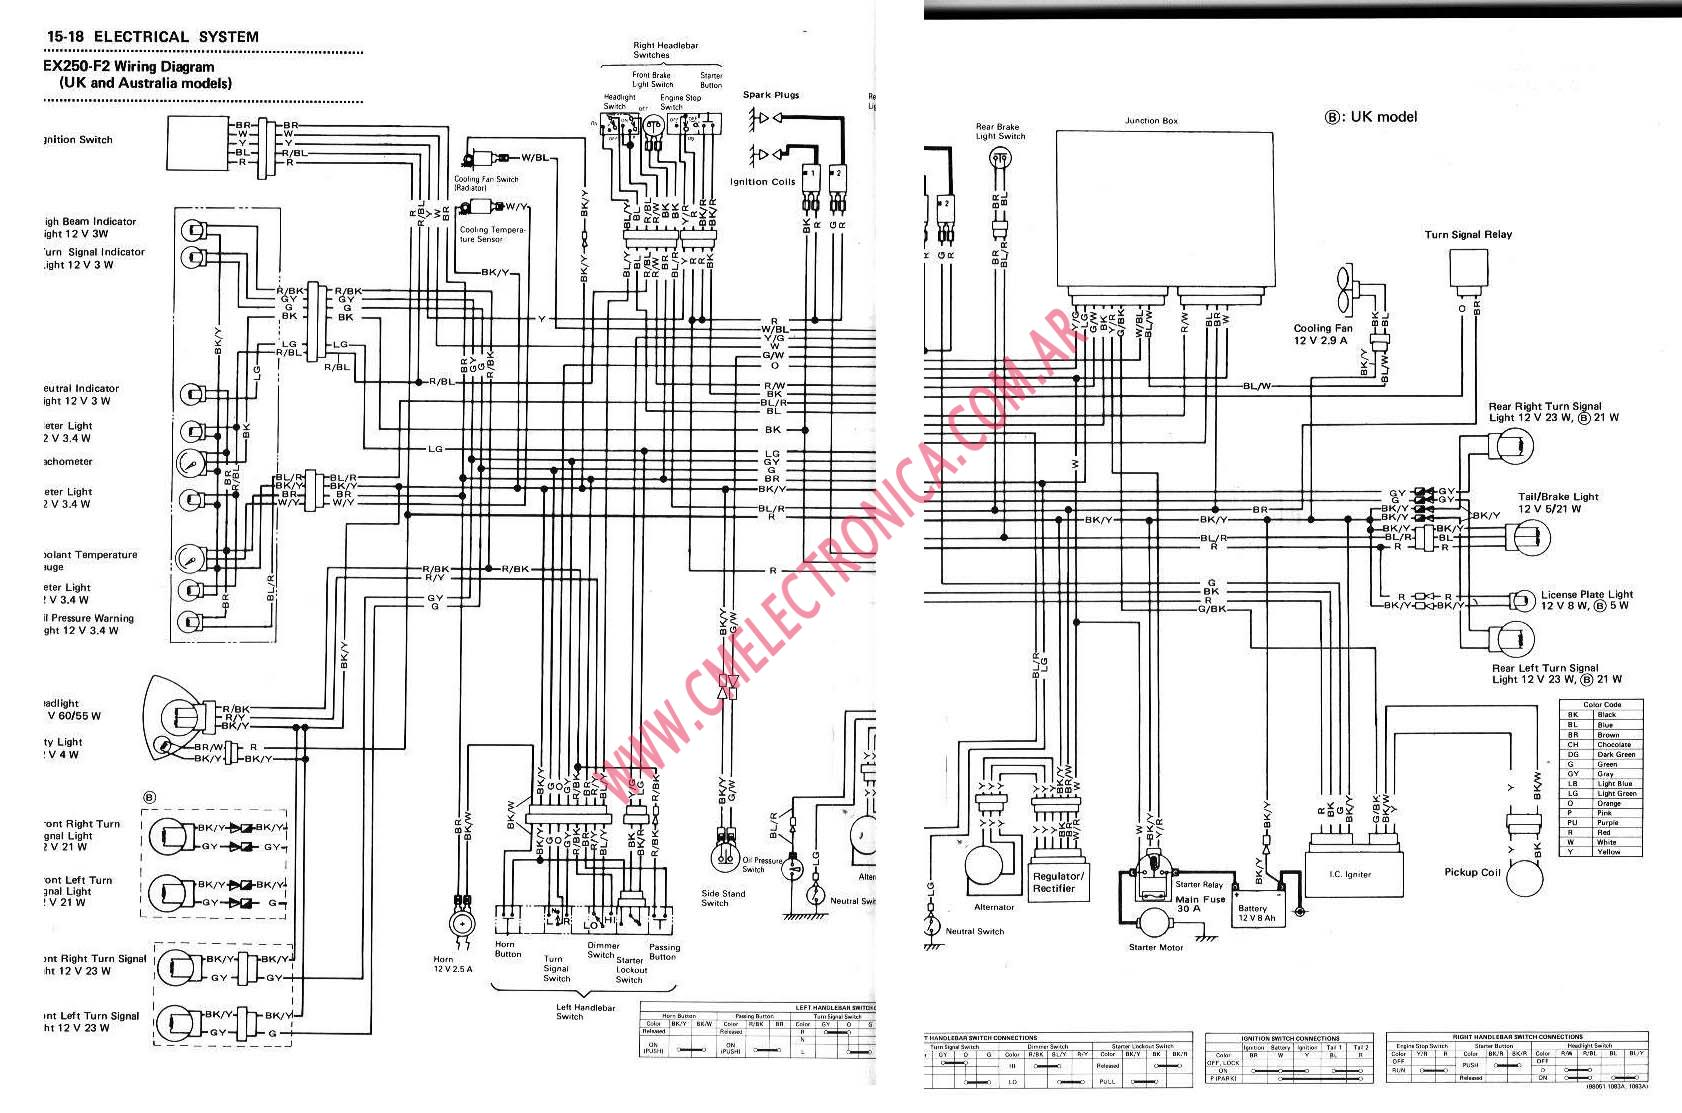 Jaguar Xj8 Fuse Box Diagram. Jaguar. Auto Wiring Diagram